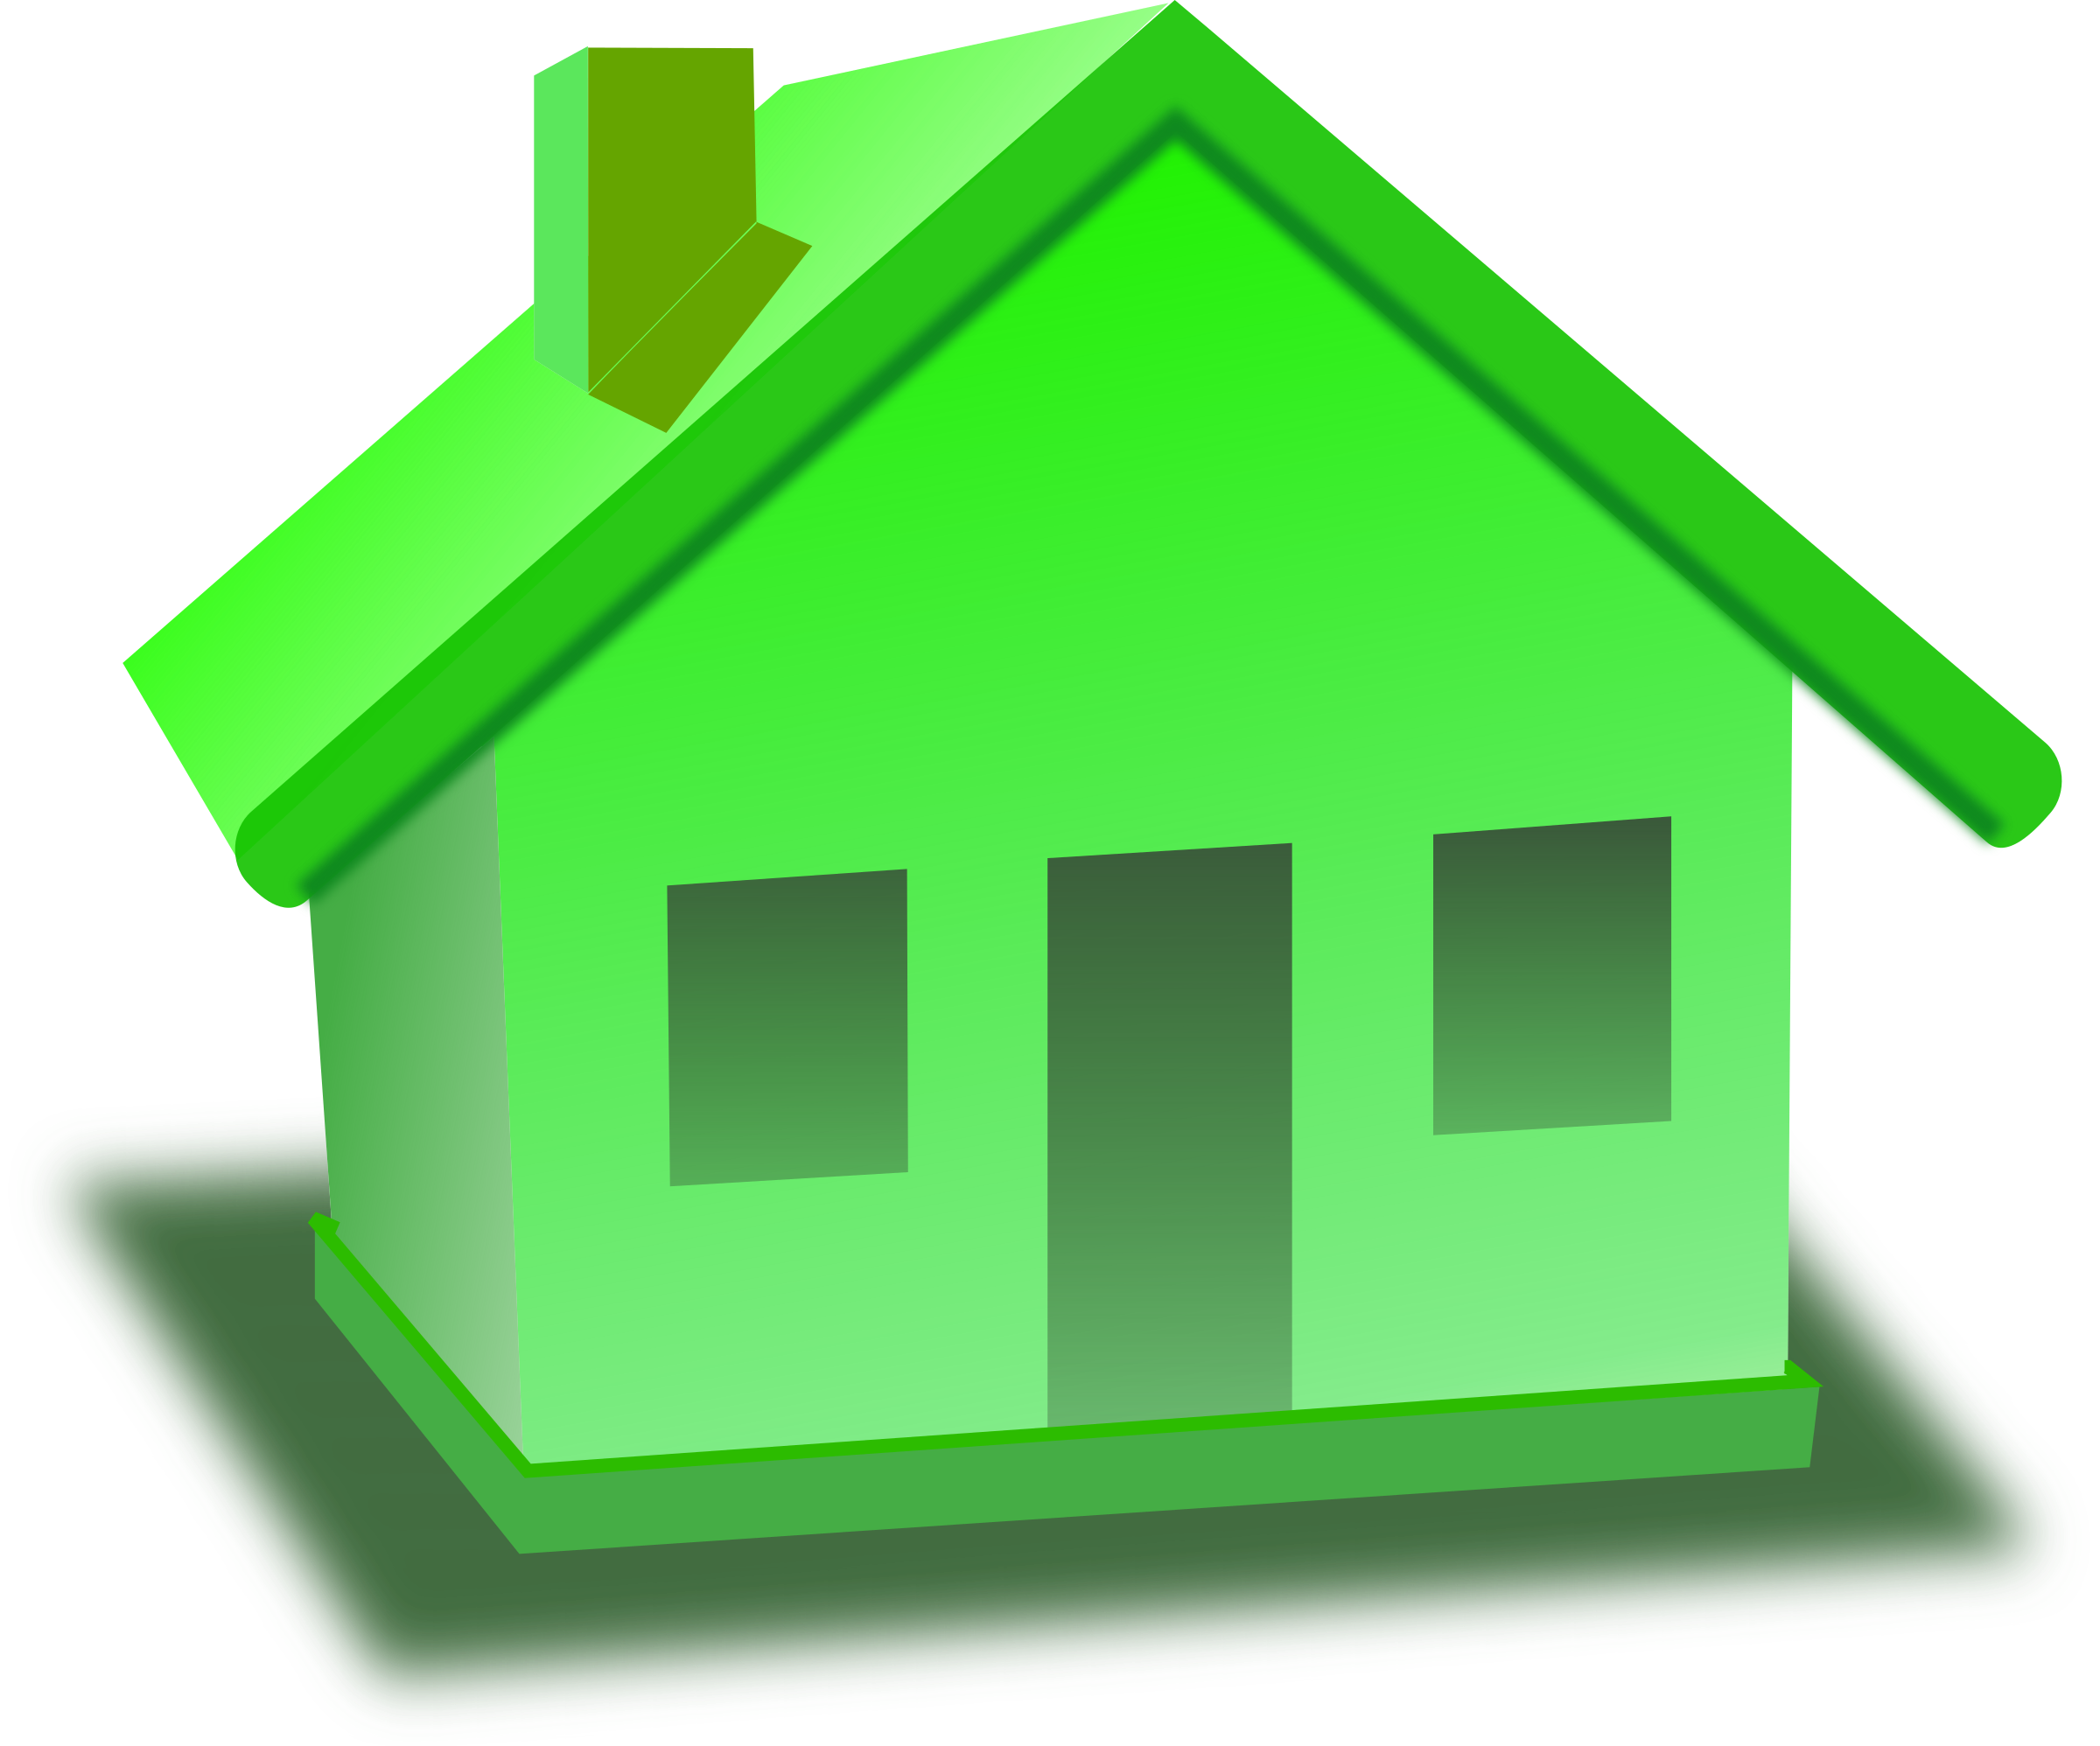 Monopoly house png. Clipart green big image